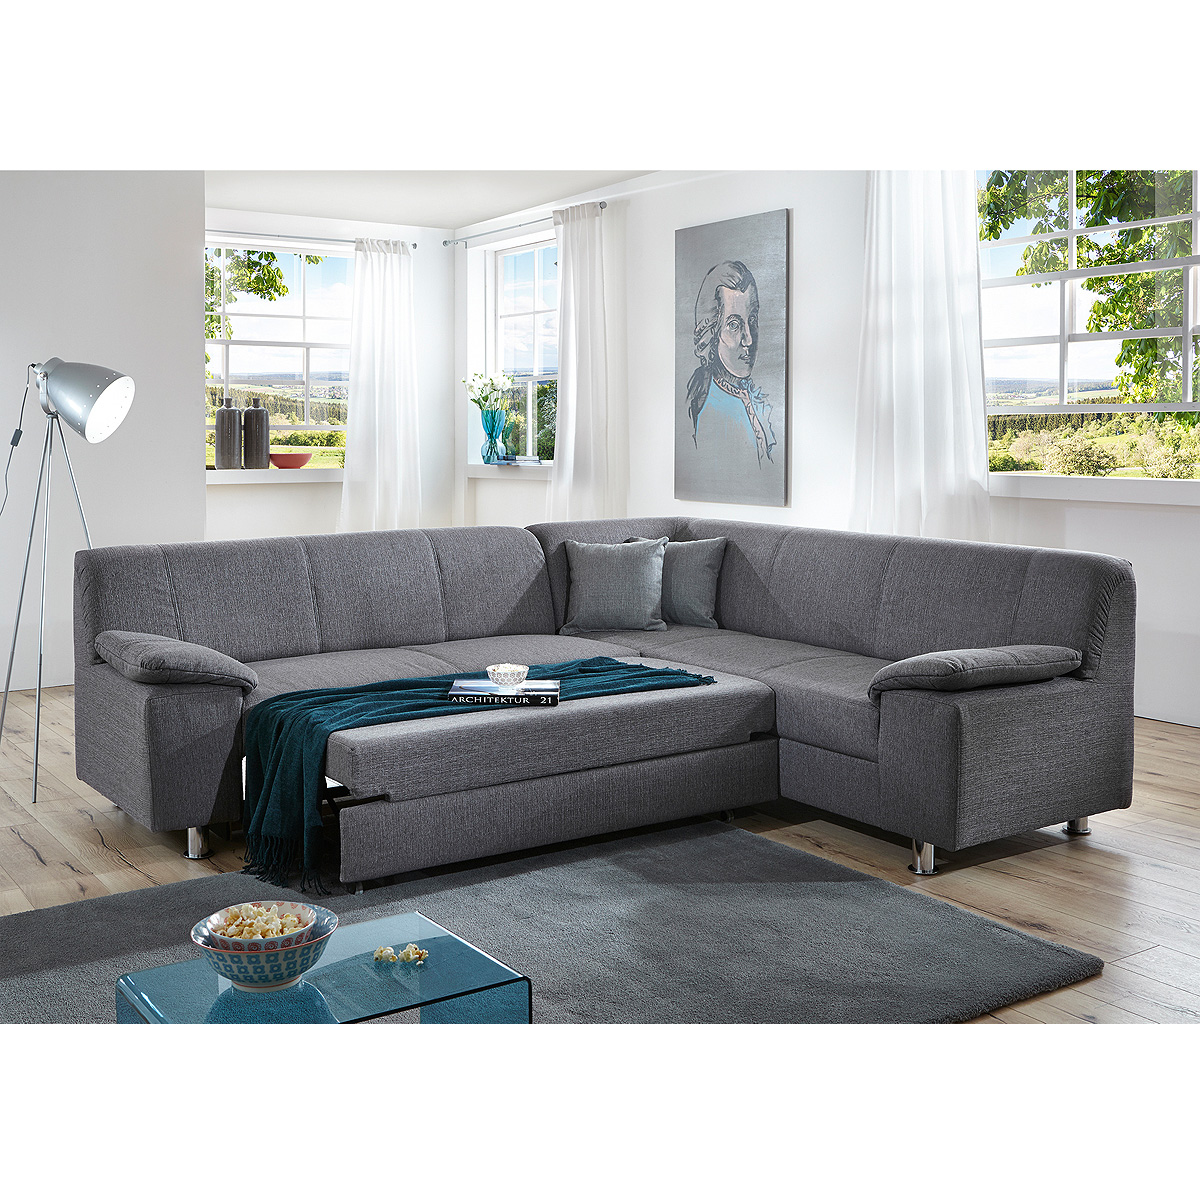 ecksofa alamo wohnlandschaft sofa polstersofa grau mit oder ohne schlaffunktion ebay. Black Bedroom Furniture Sets. Home Design Ideas